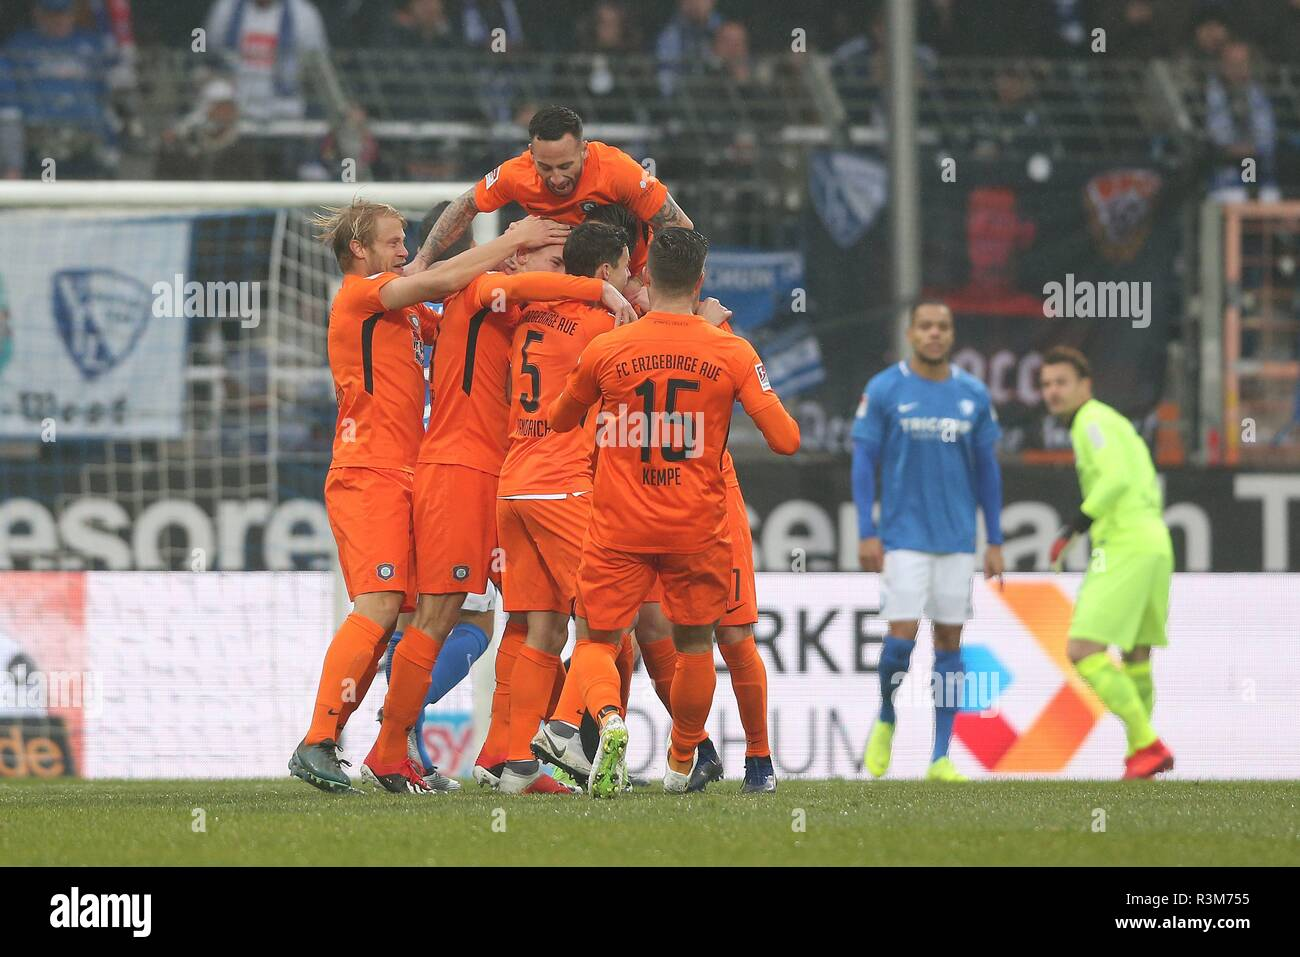 firo: 24.11.2018, football, 2.Bundesliga, season 2018/2019, VfL Bochum - Erzgebirge Aue jubilation to 0: 1 Aue to TESTROET | usage worldwide - Stock Image